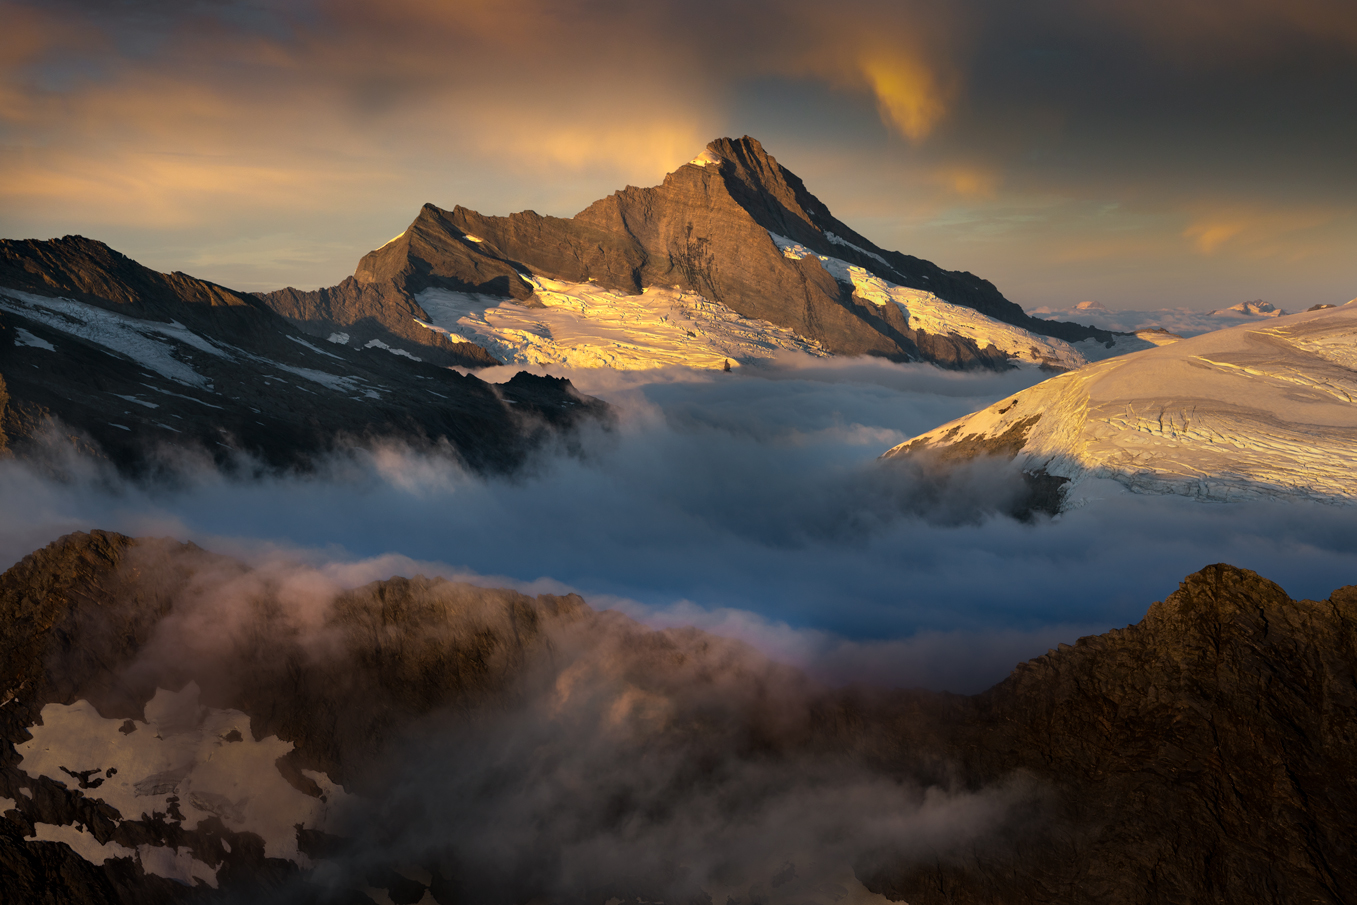 Glaciated Mount Aspiring sunrise, West Coast New Zealand